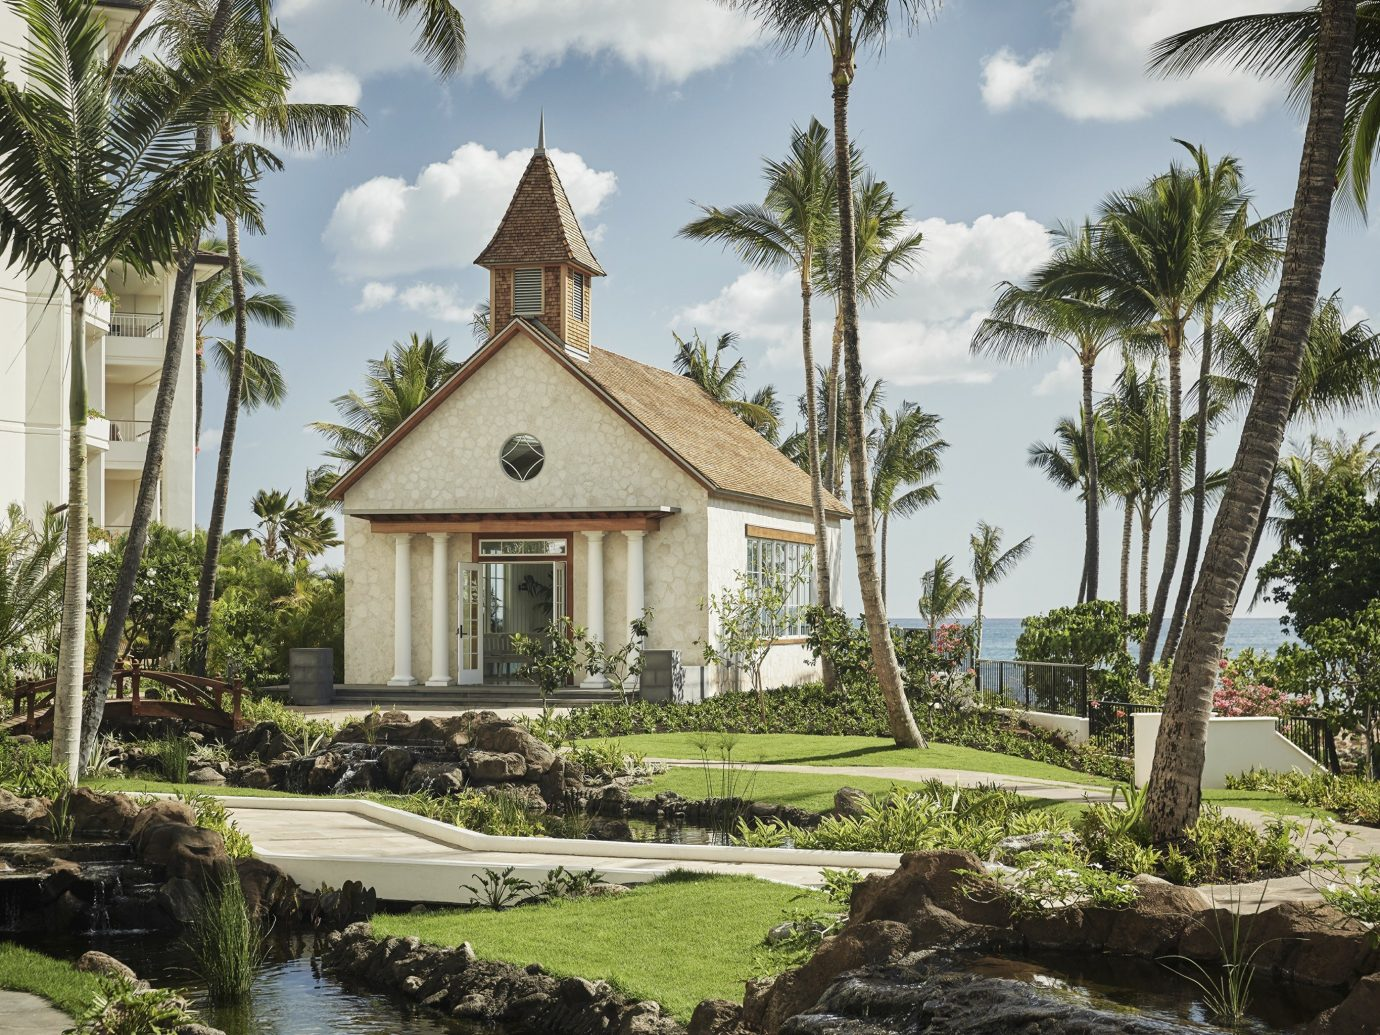 Offbeat tree outdoor sky property house arecales plant palm tree home estate cottage real estate Villa Resort palm hacienda mansion Garden stone surrounded